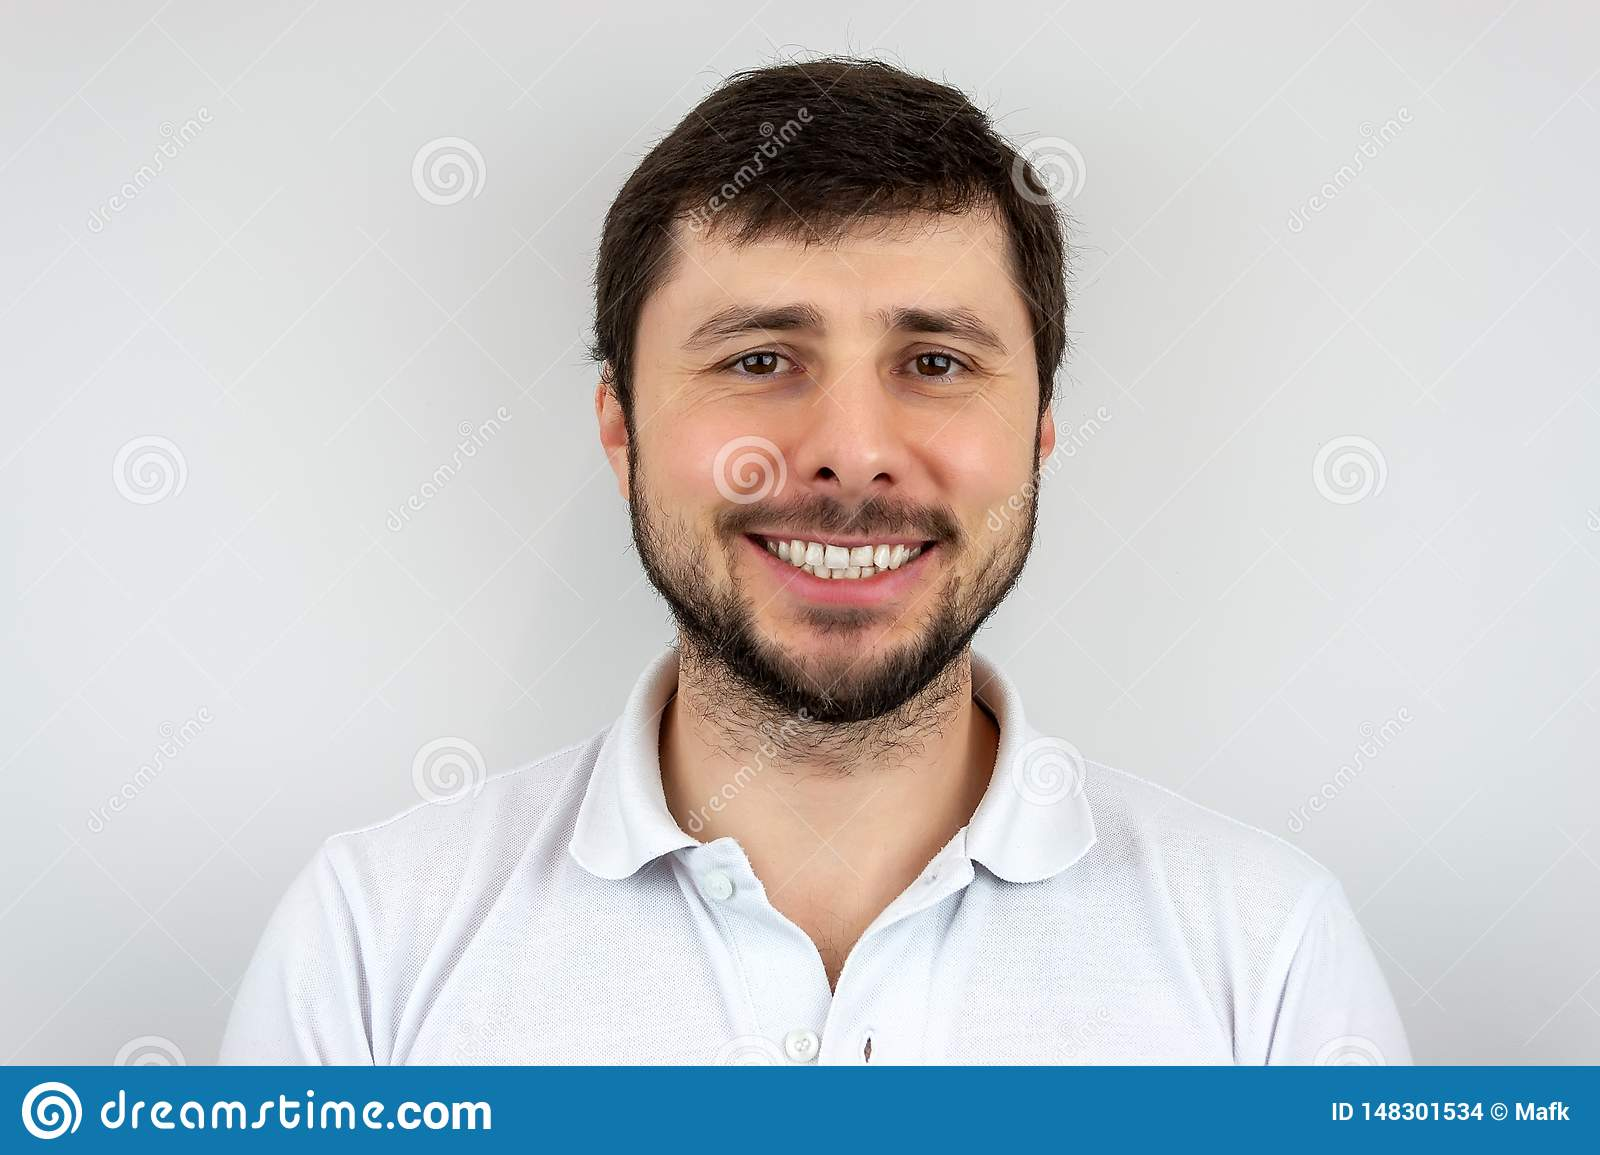 A smiling very happy handsome bearded man with brown eyes in a white t-shirt